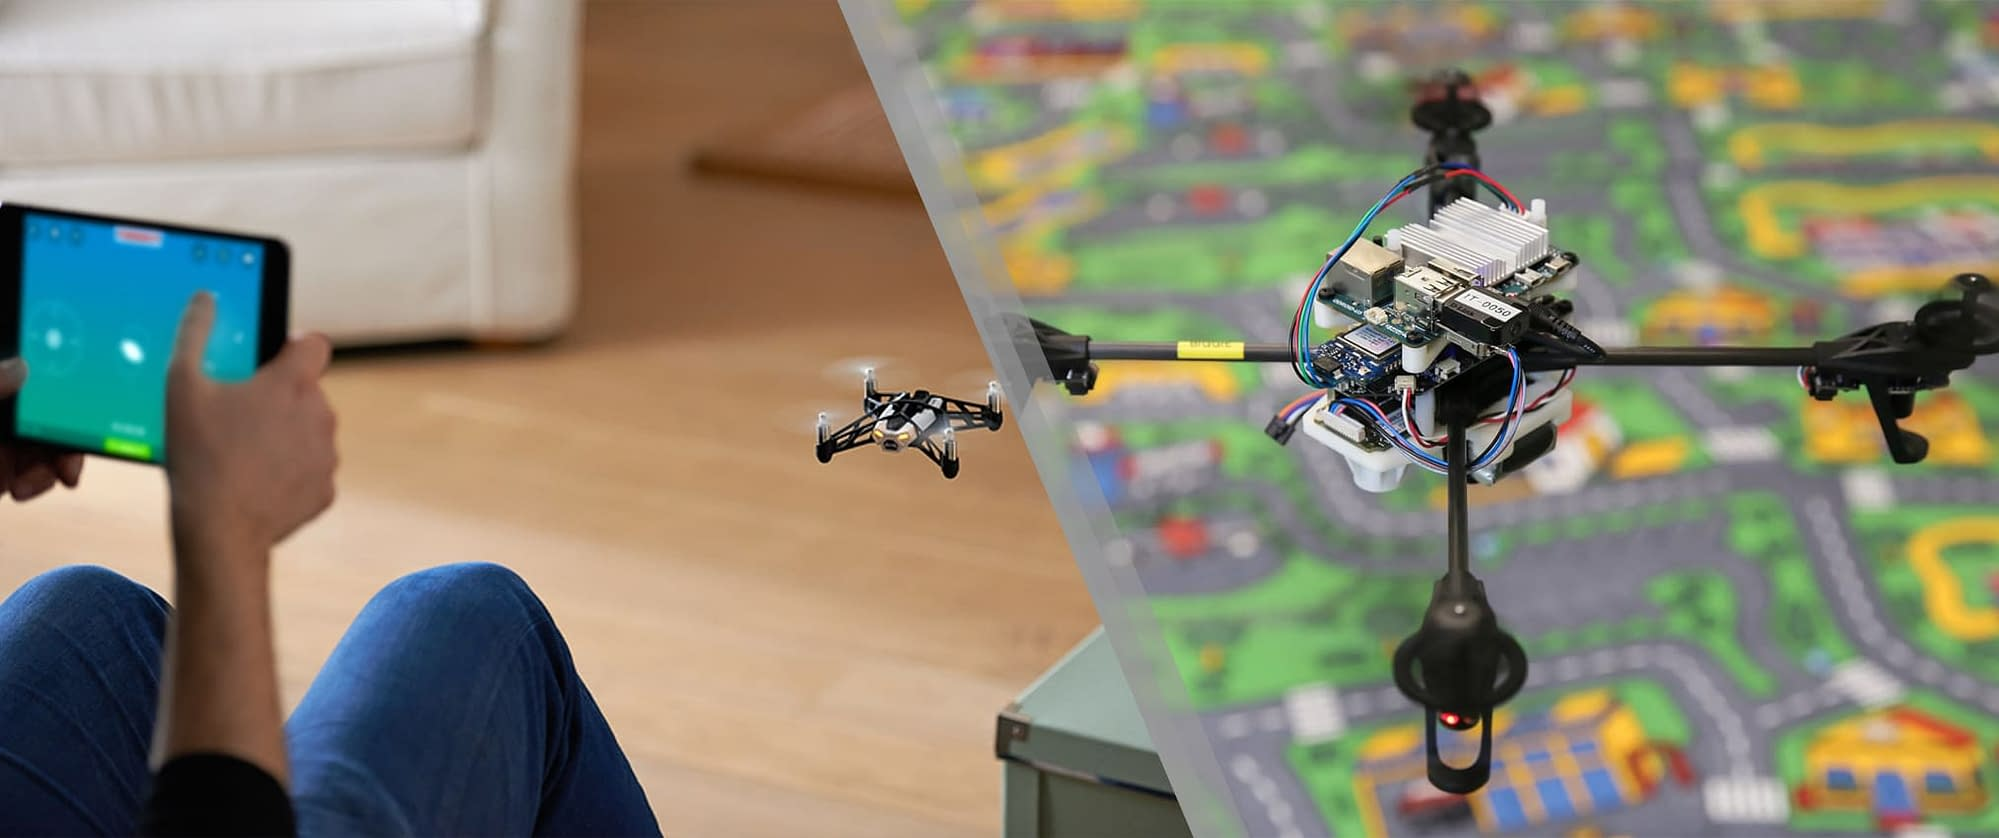 New generation of tiny, agile drones introduced